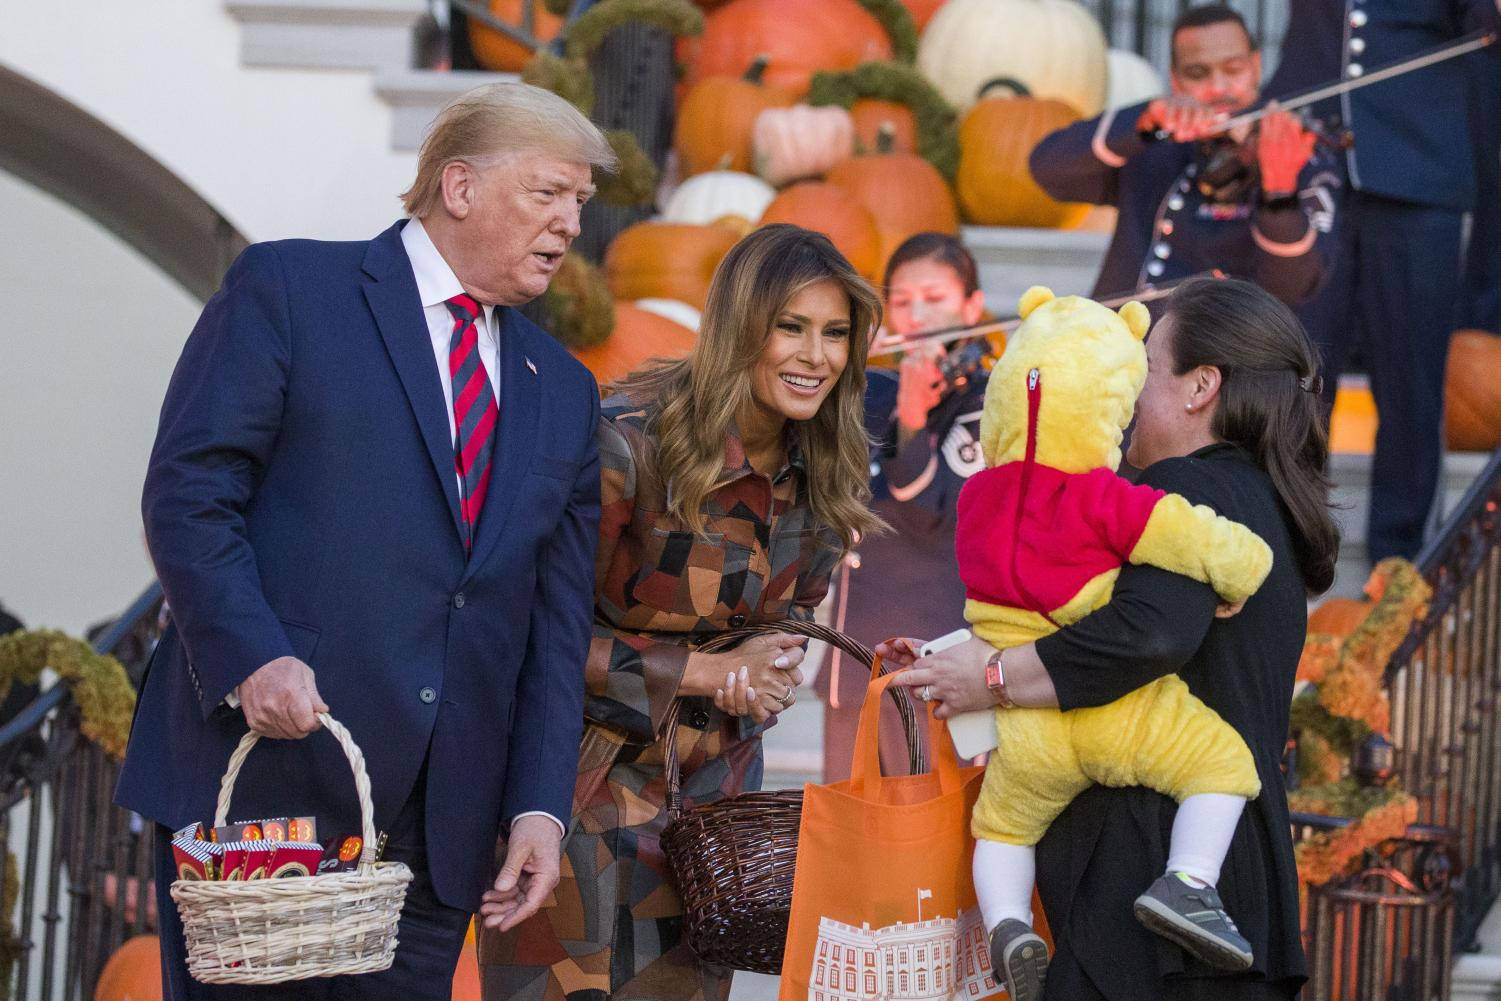 President Donald Trump and First Lady Melania Trump give candy to children during a Halloween trick-or-treat event on the South Lawn of the White House which is decorated for Halloween, Monday, Oct. 28, 2019, in Washington.